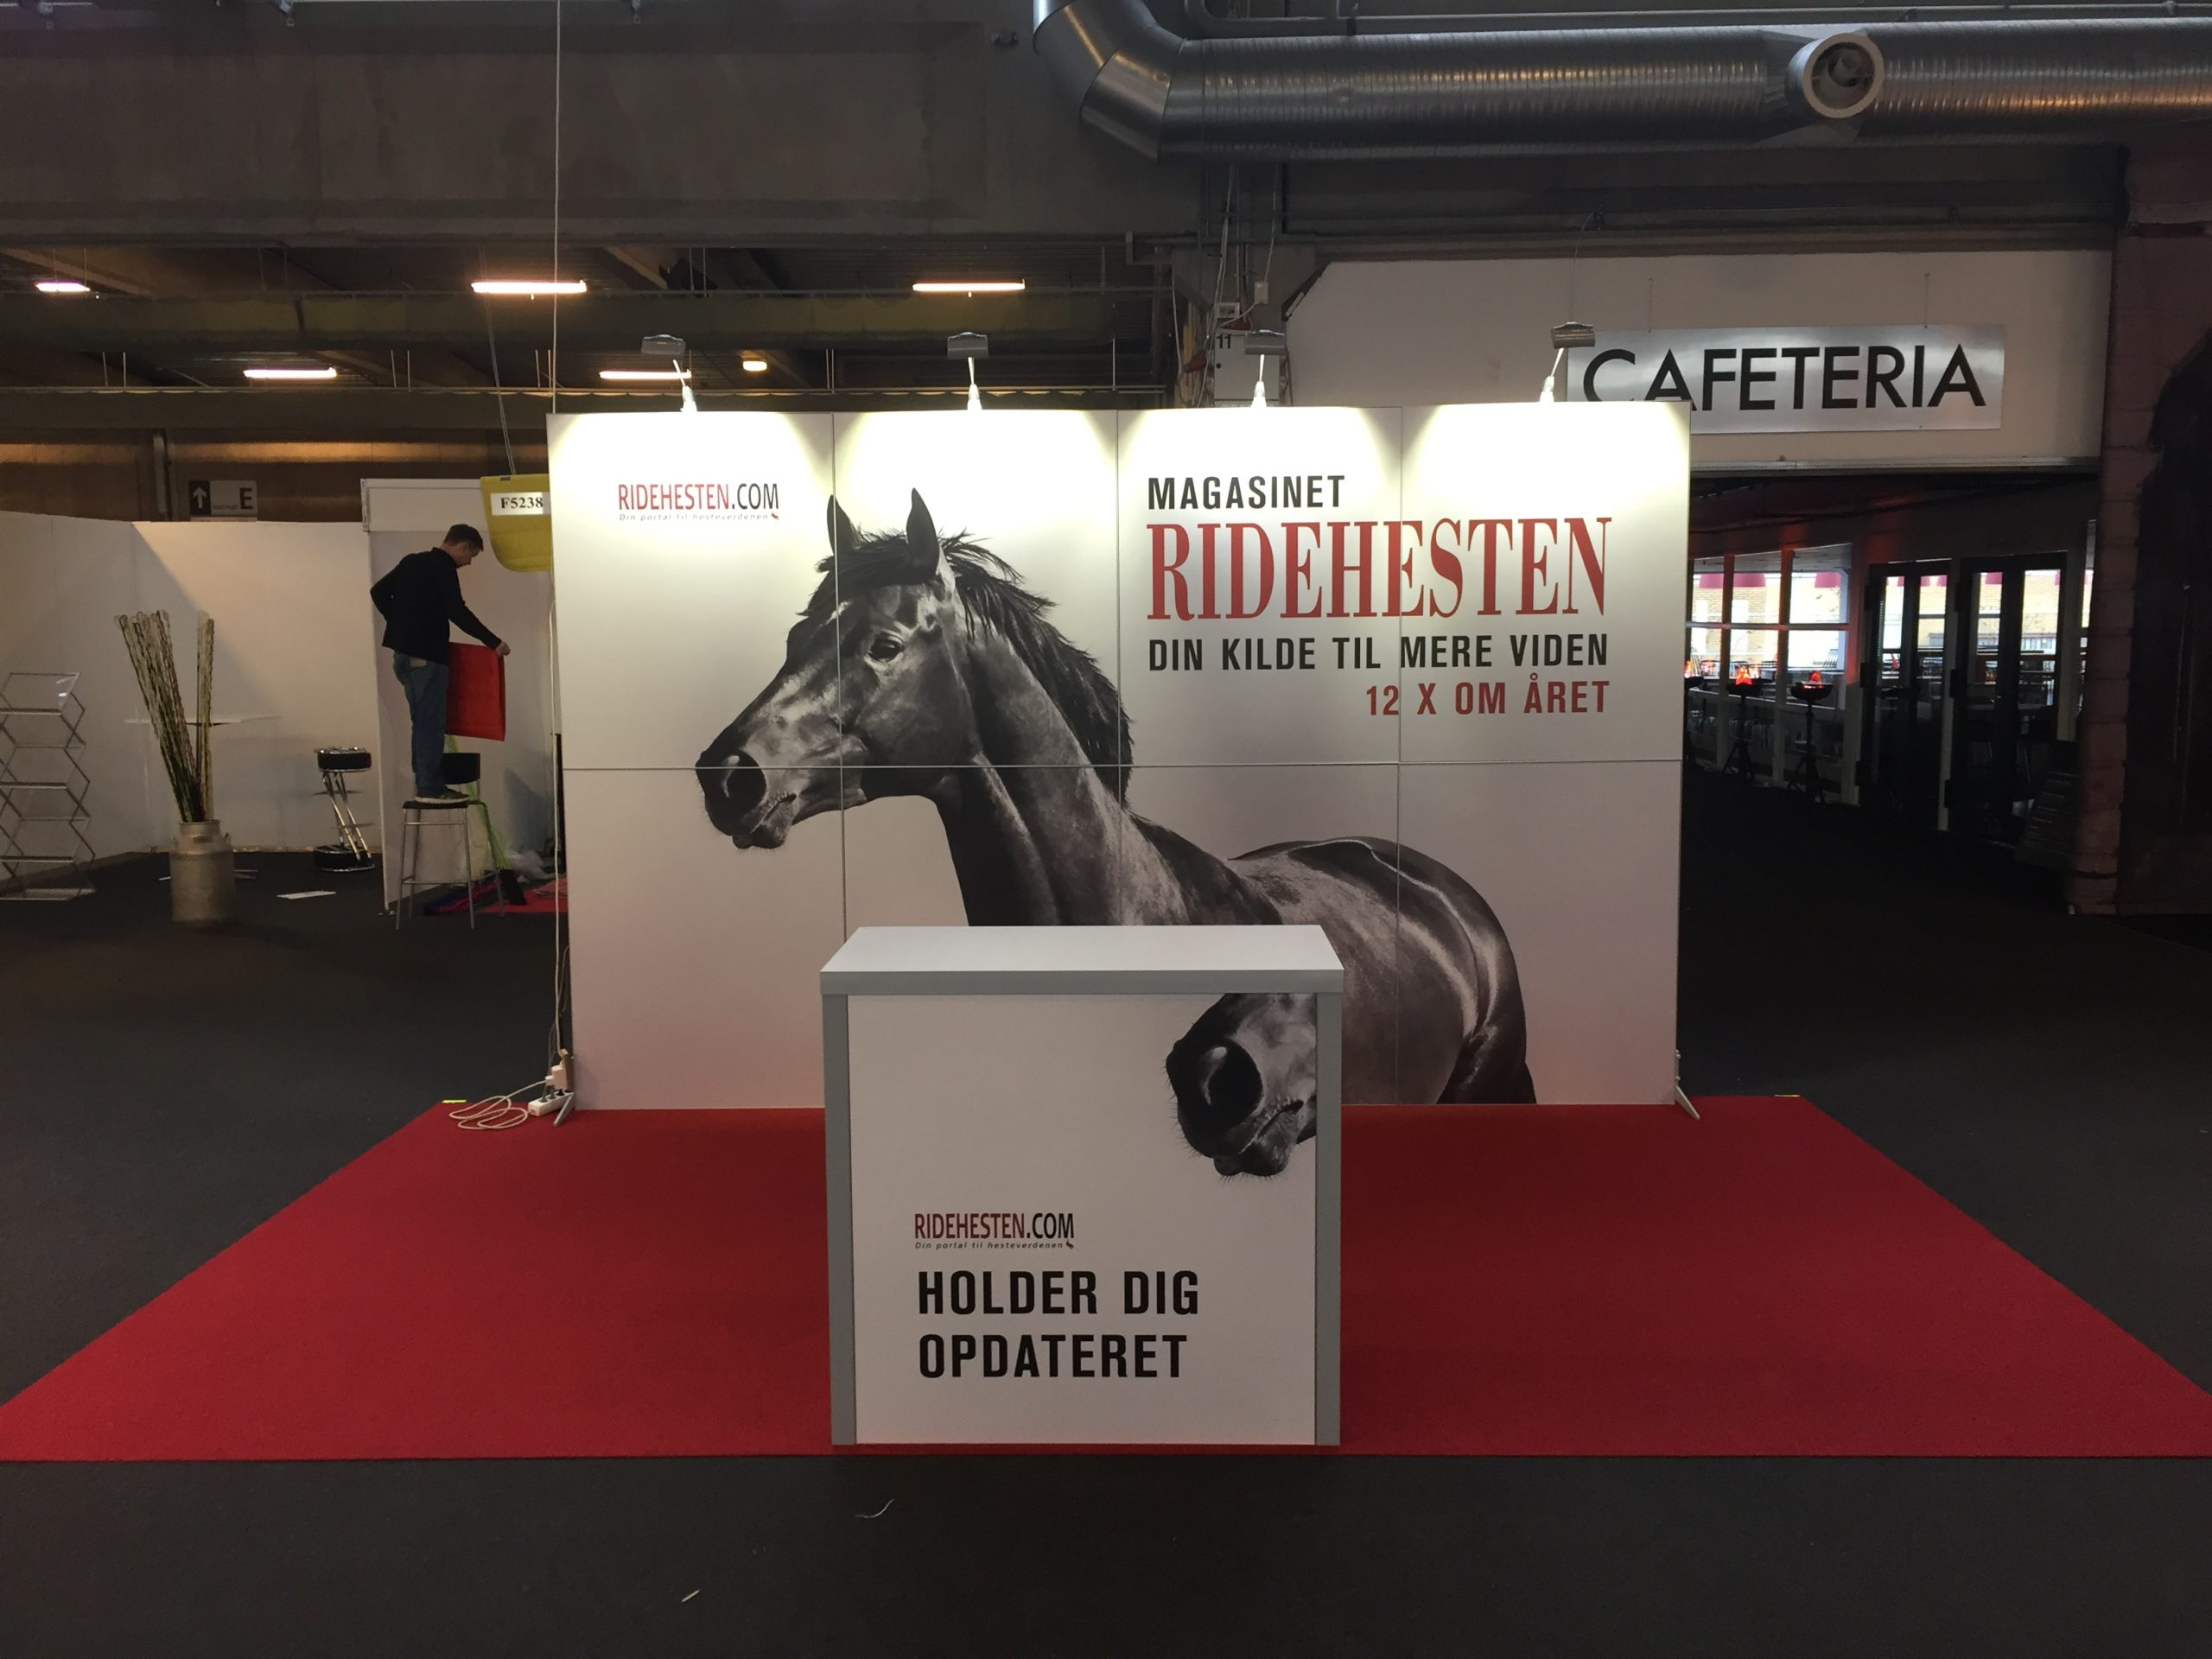 Provendi messestand 8 rammer cleverframe